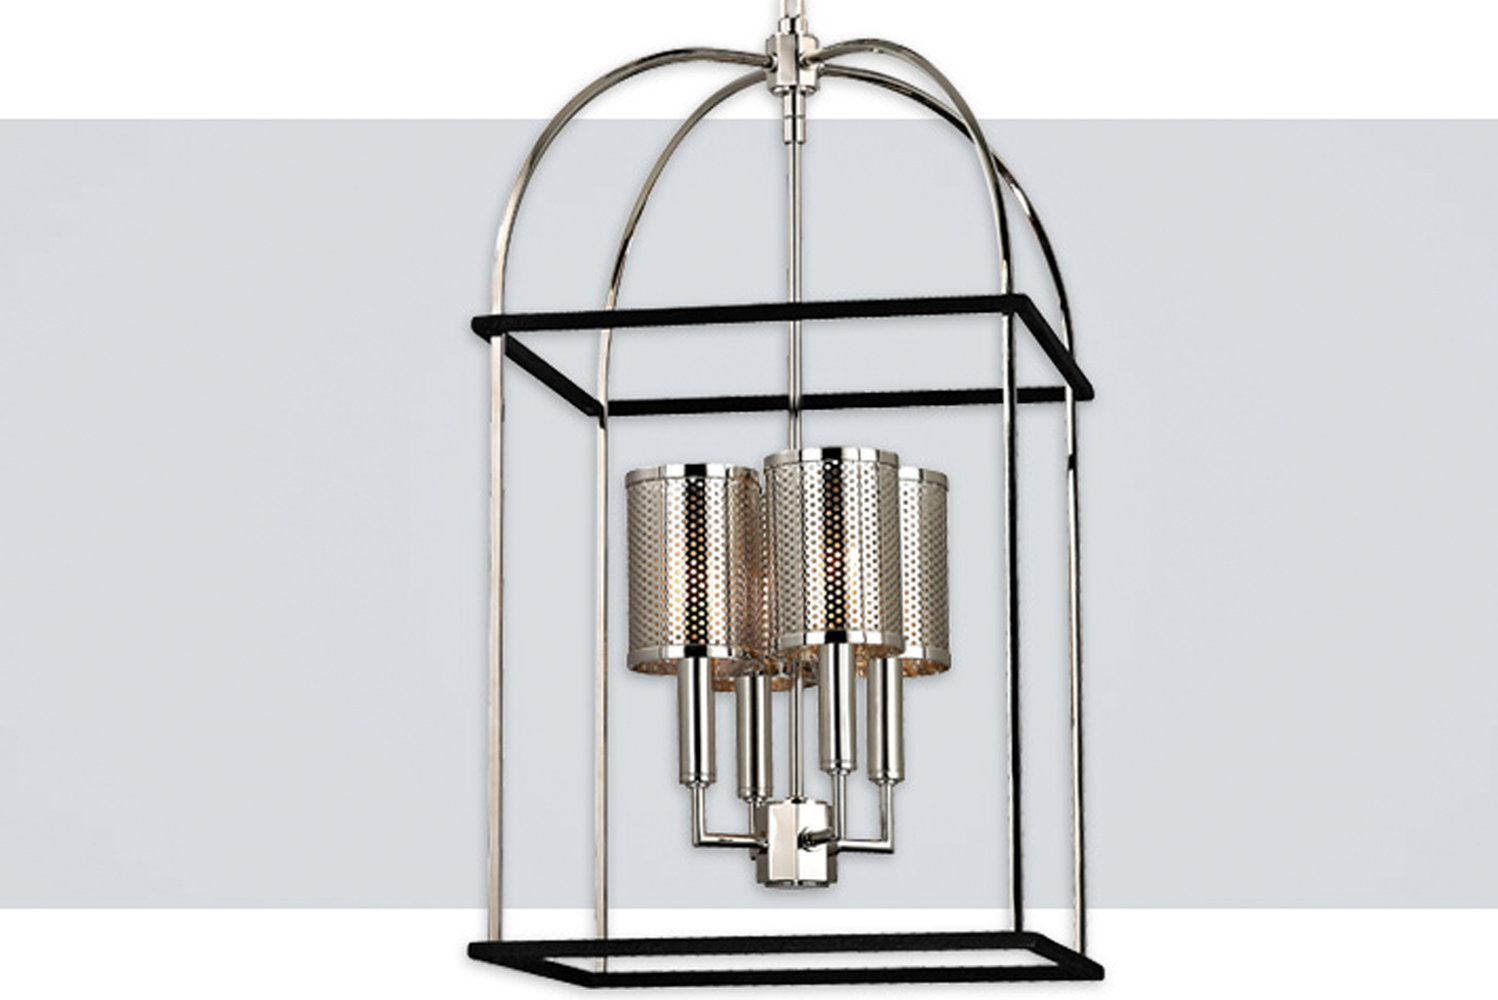 Vestal by Hudson Valley Lighting has perforated metal shades.